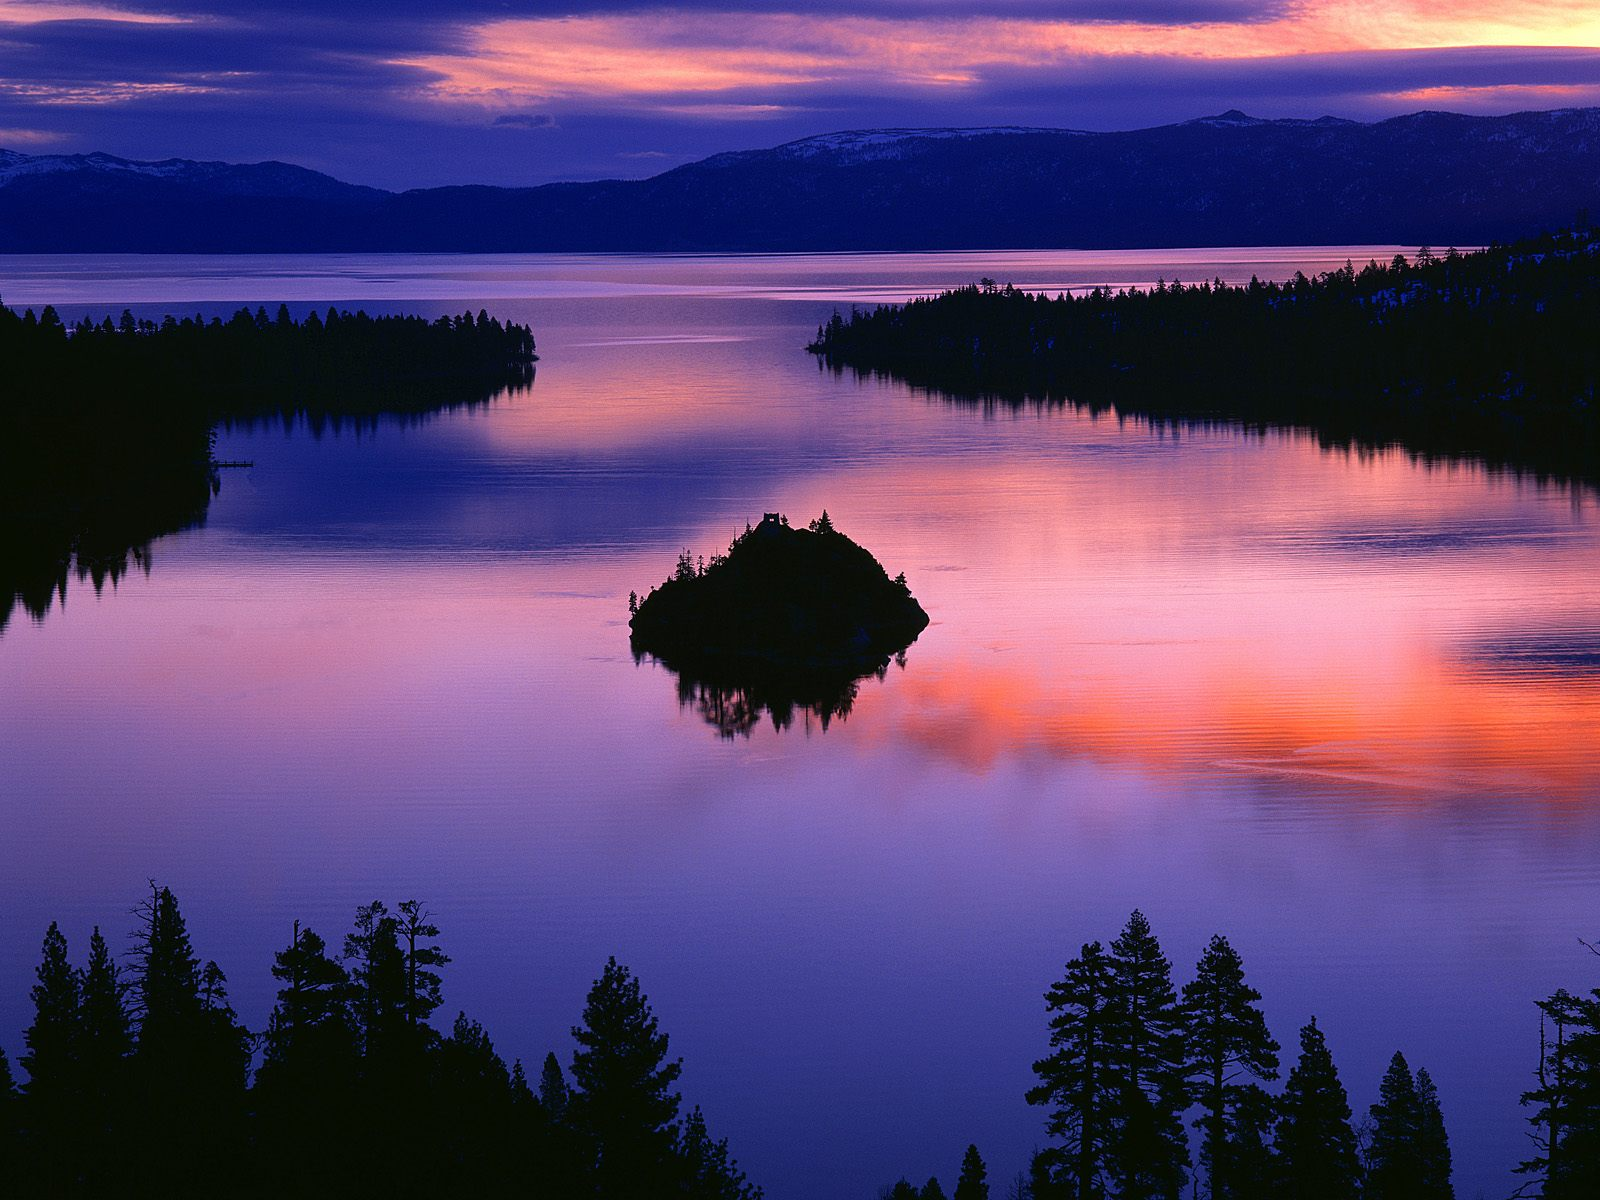 twilight color at emerald bay lake tahoe california picture twilight color at emerald bay lake. Black Bedroom Furniture Sets. Home Design Ideas